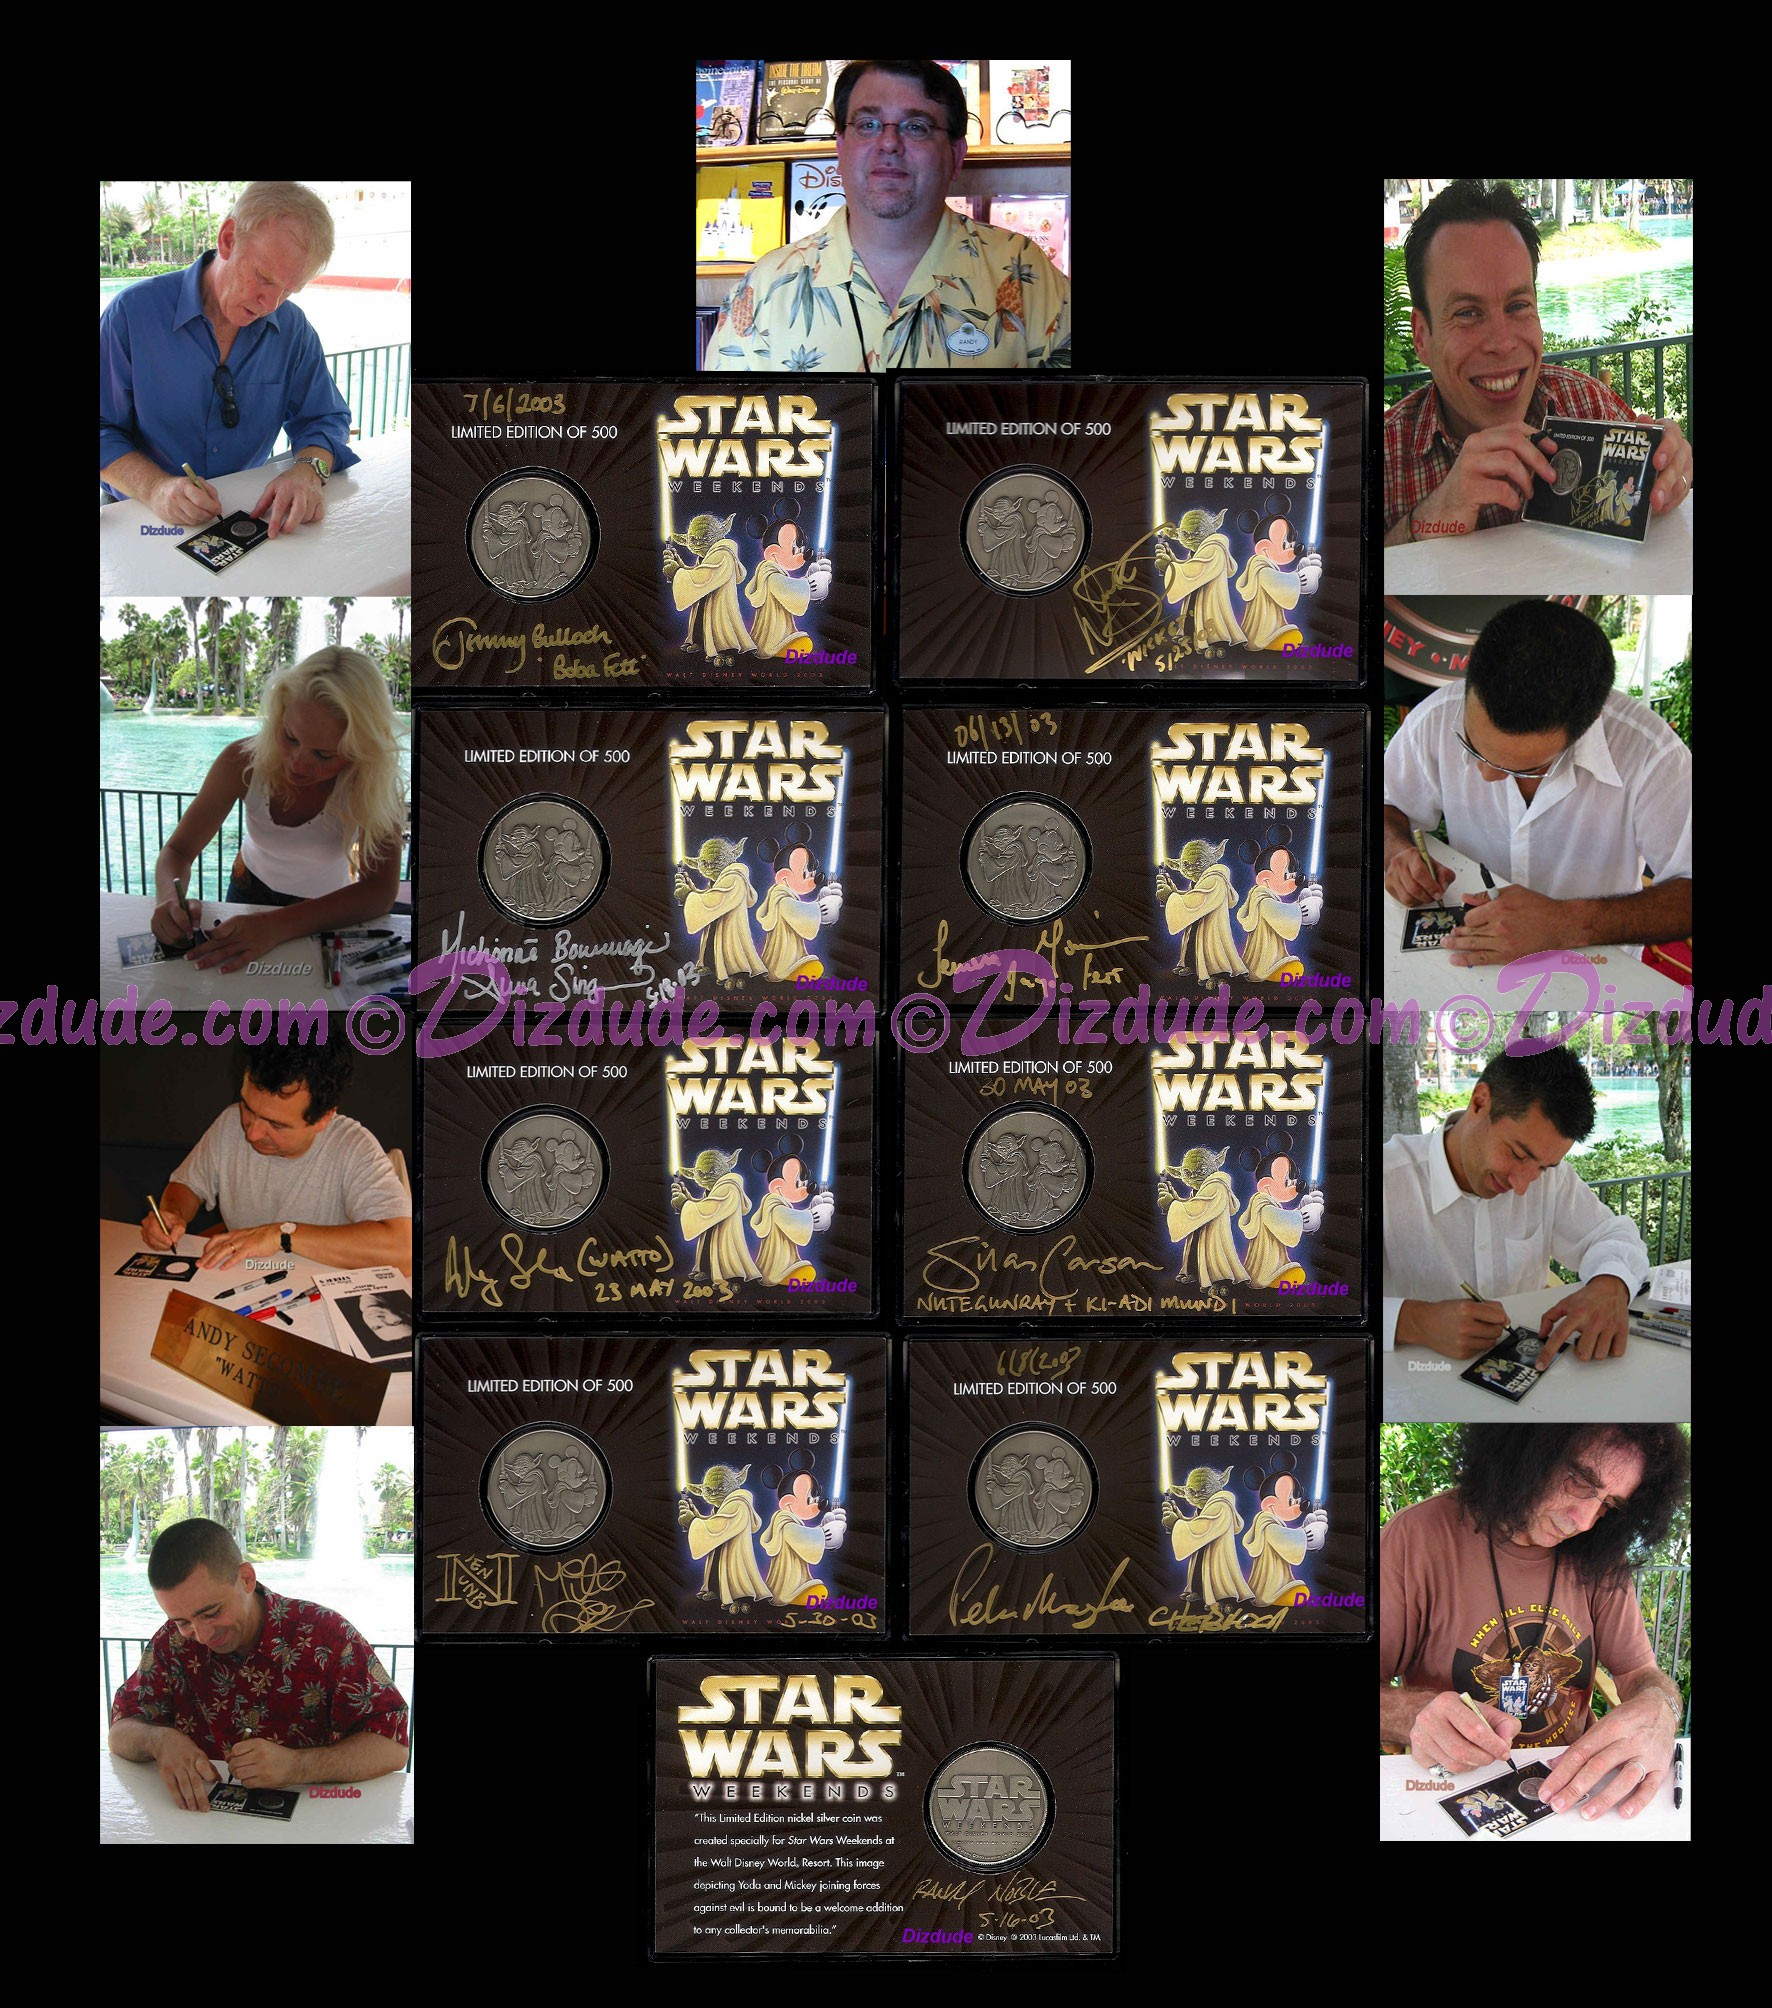 16 Autographs on Star Wars Weekends 2003 Nickel Silver 8 Coin Set ~ Signed by every guest Star Wars Actor & Disney artist who attended + photos + CoA